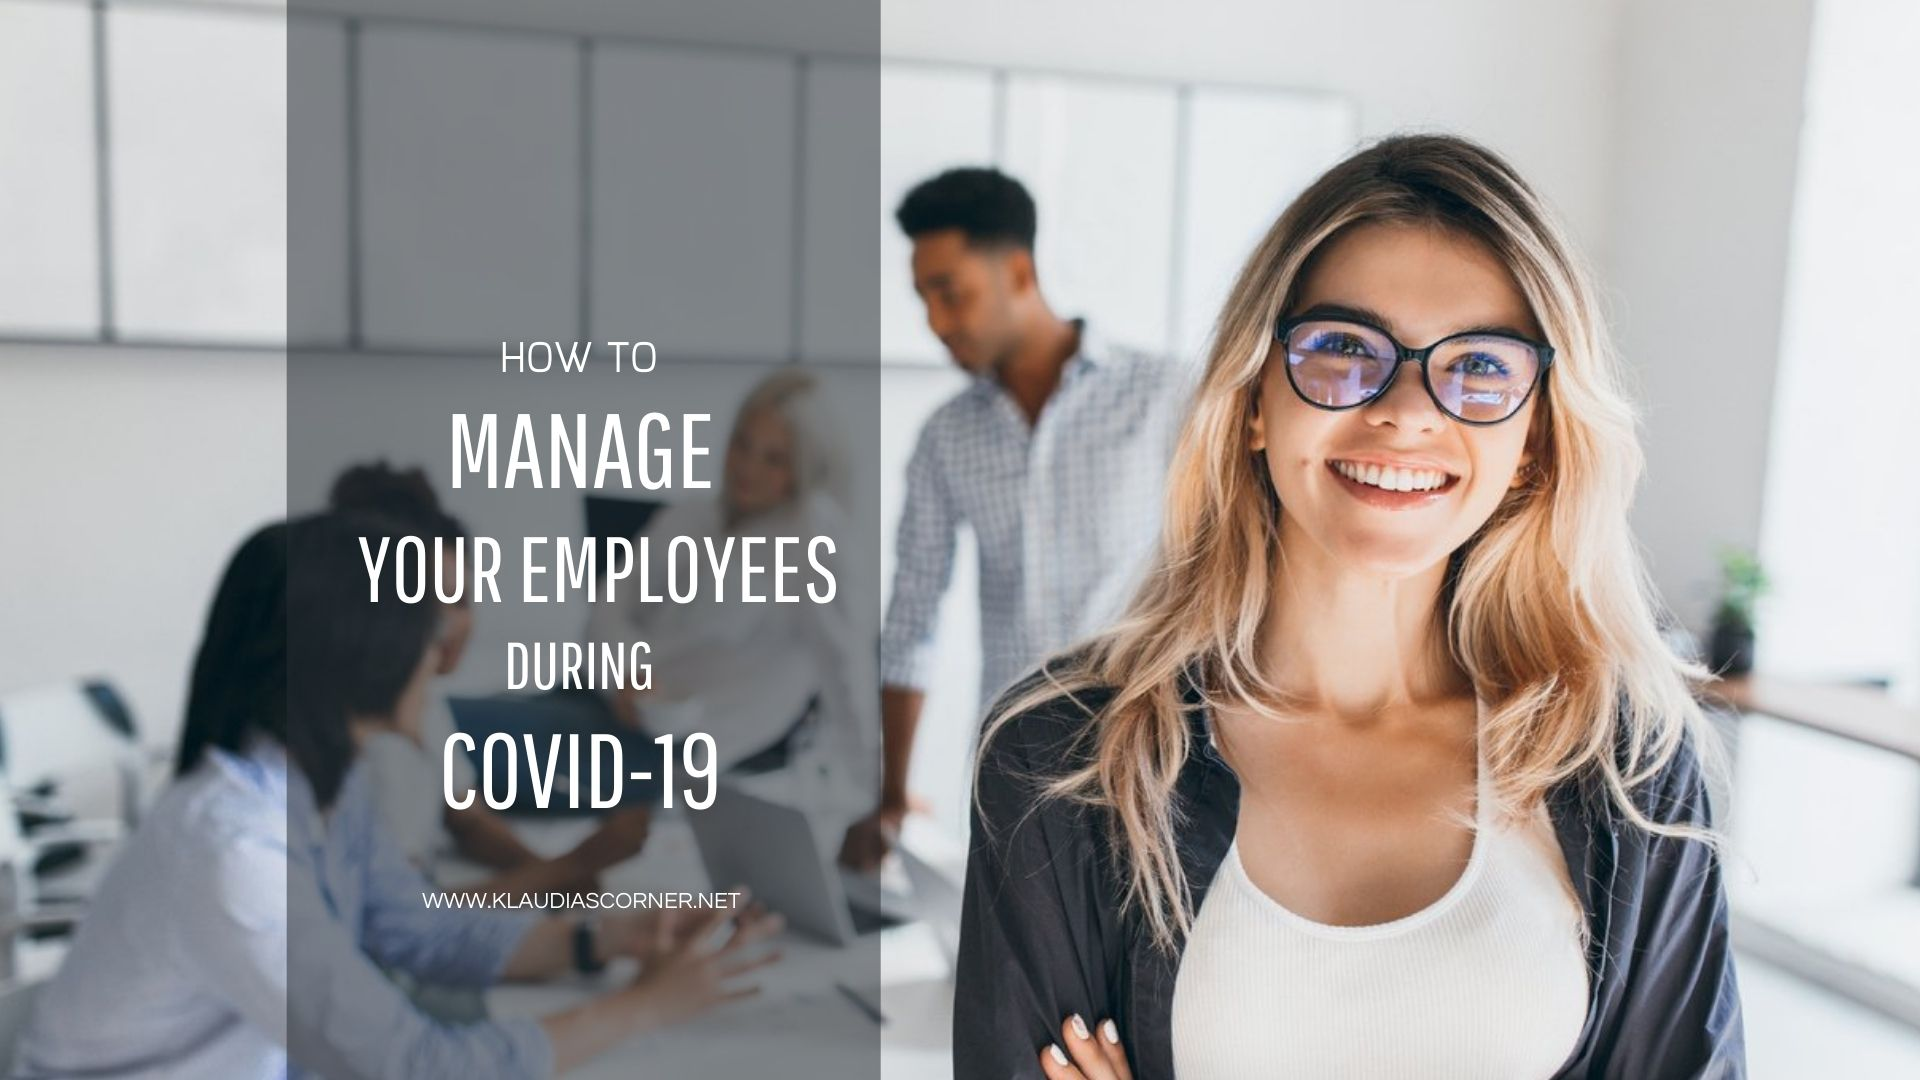 Employee Management Tips - How to Manage Your Employees During Covid-19